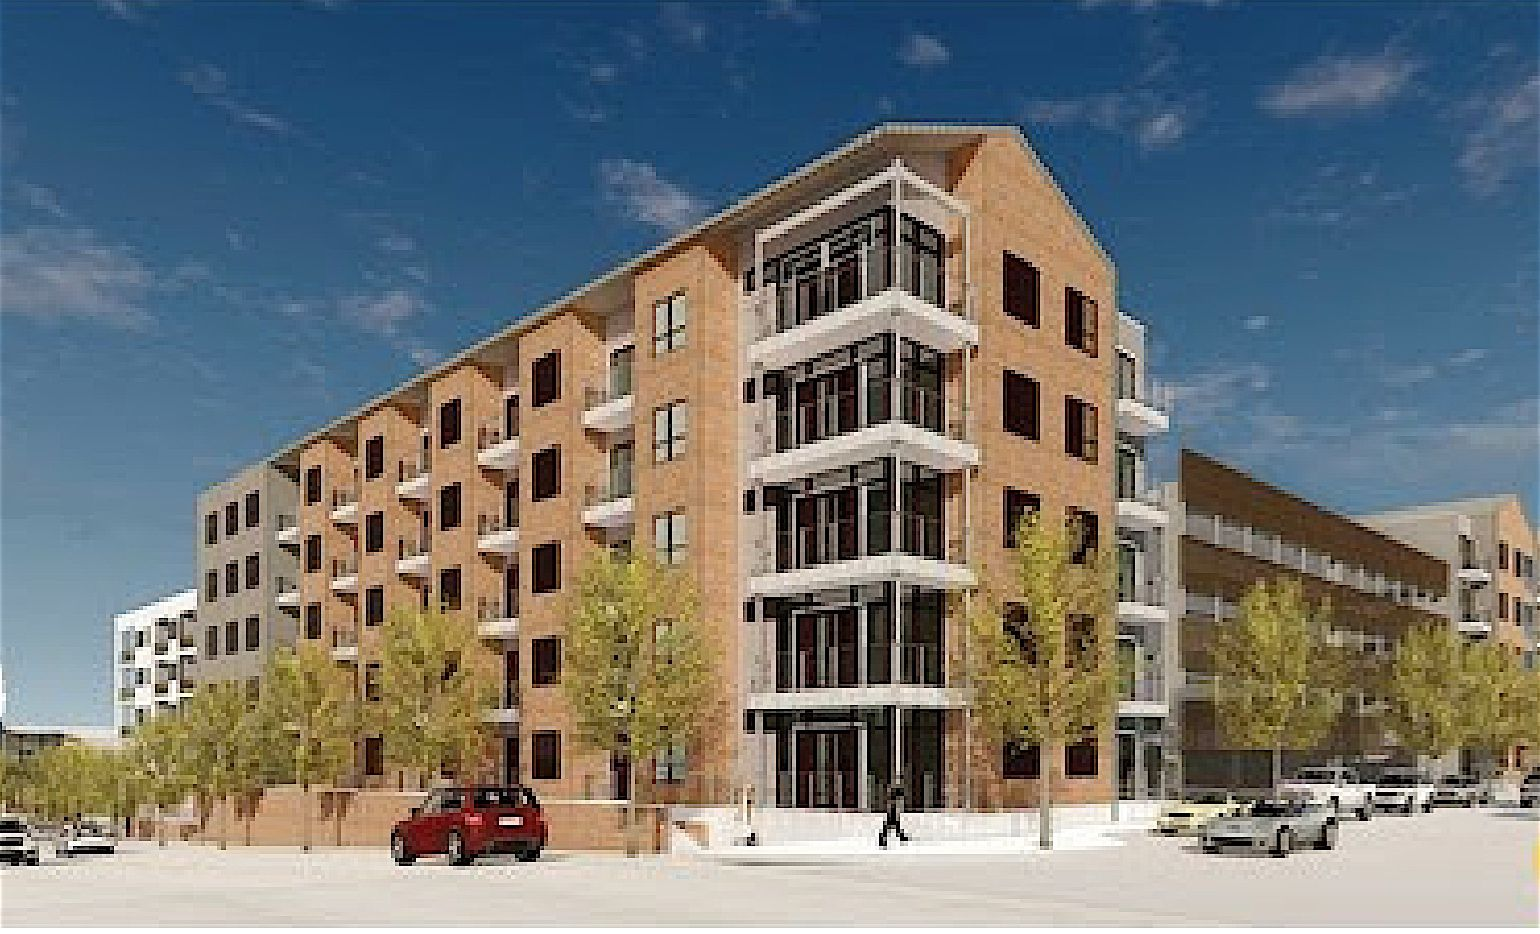 Stillwater Capital's new apartments take their name from the historic Crystal Springs Dance Pavilion.